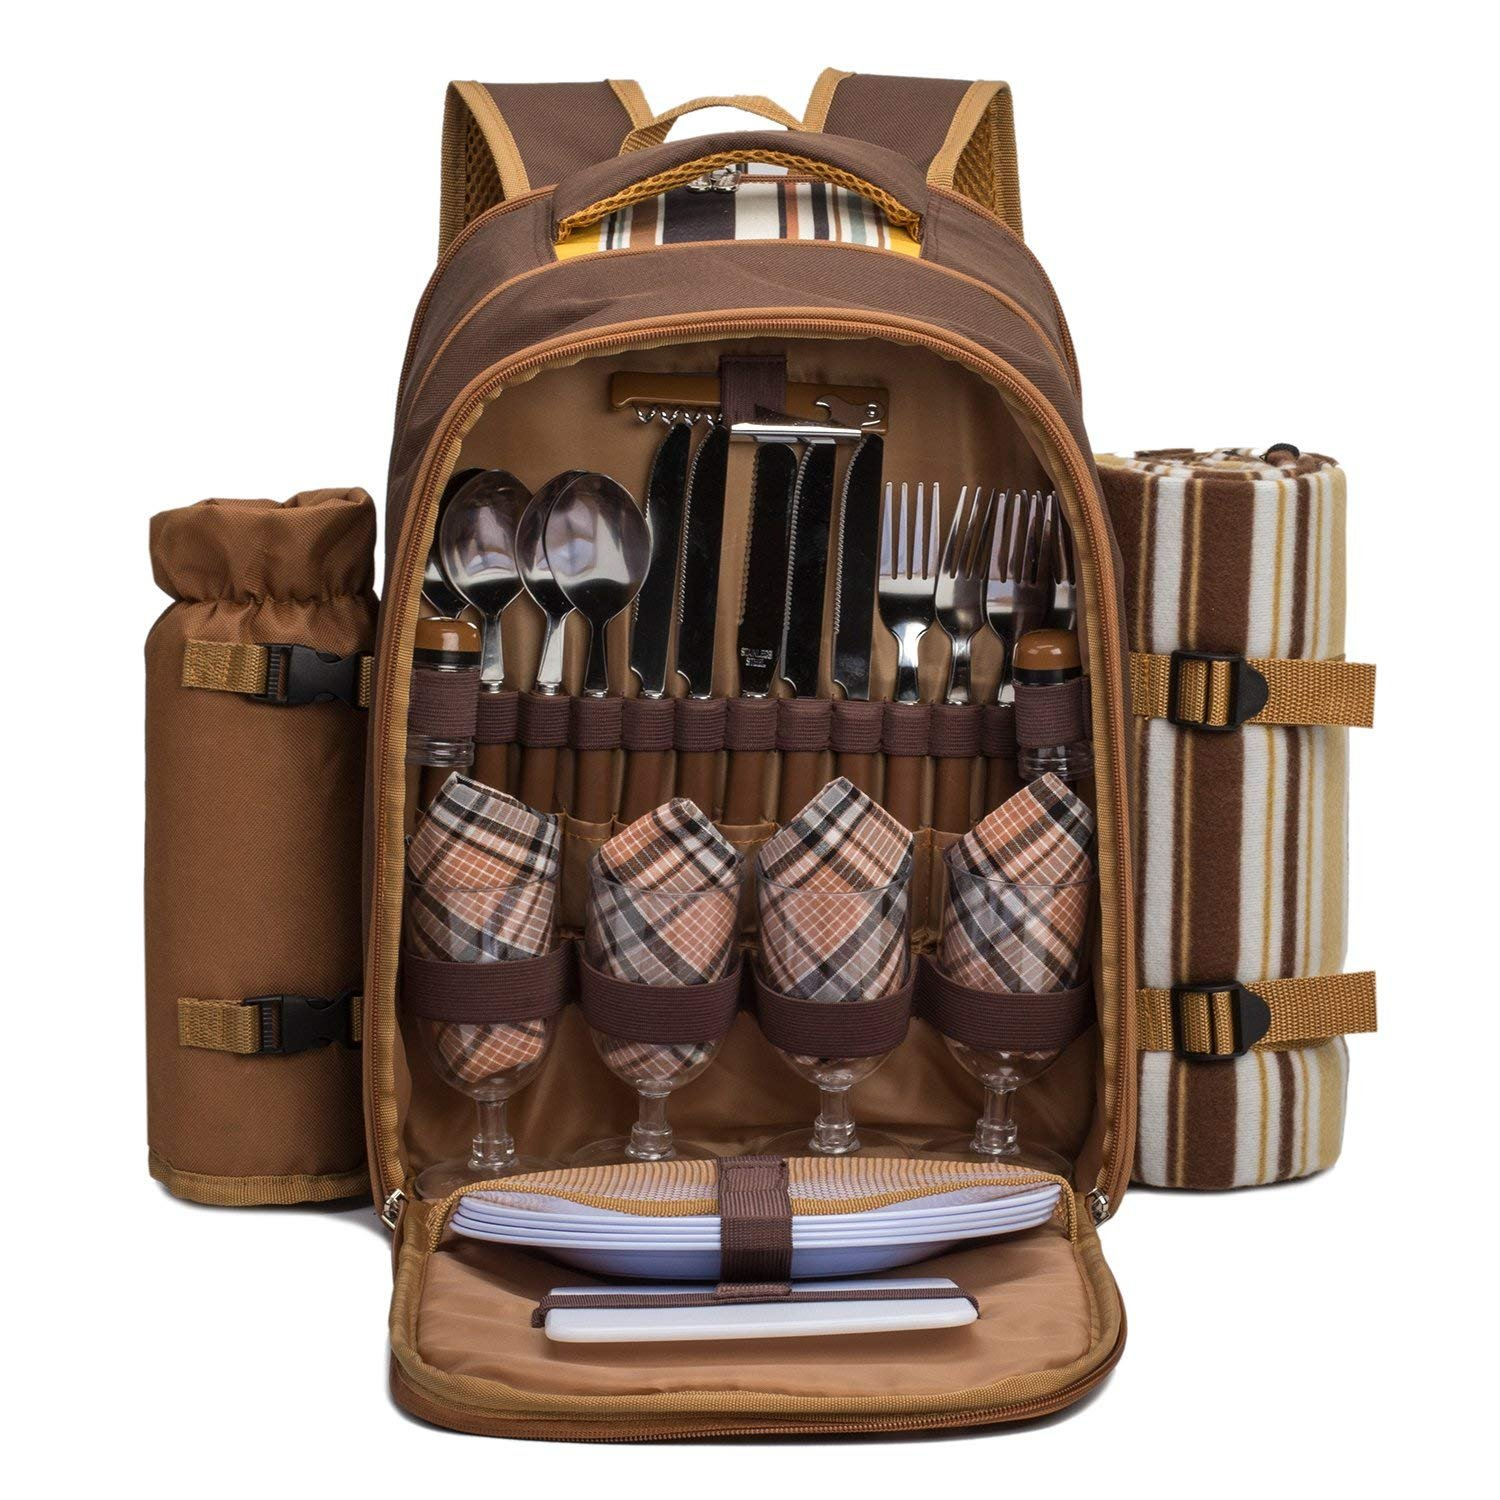 apollo walker TAWA Picnic Backpack Bag for 4 Person with Cooler Compartment,Wine Bag, Picnic Blanket(45''x53''), Best for Family and Lovers Gifts (Coffee)